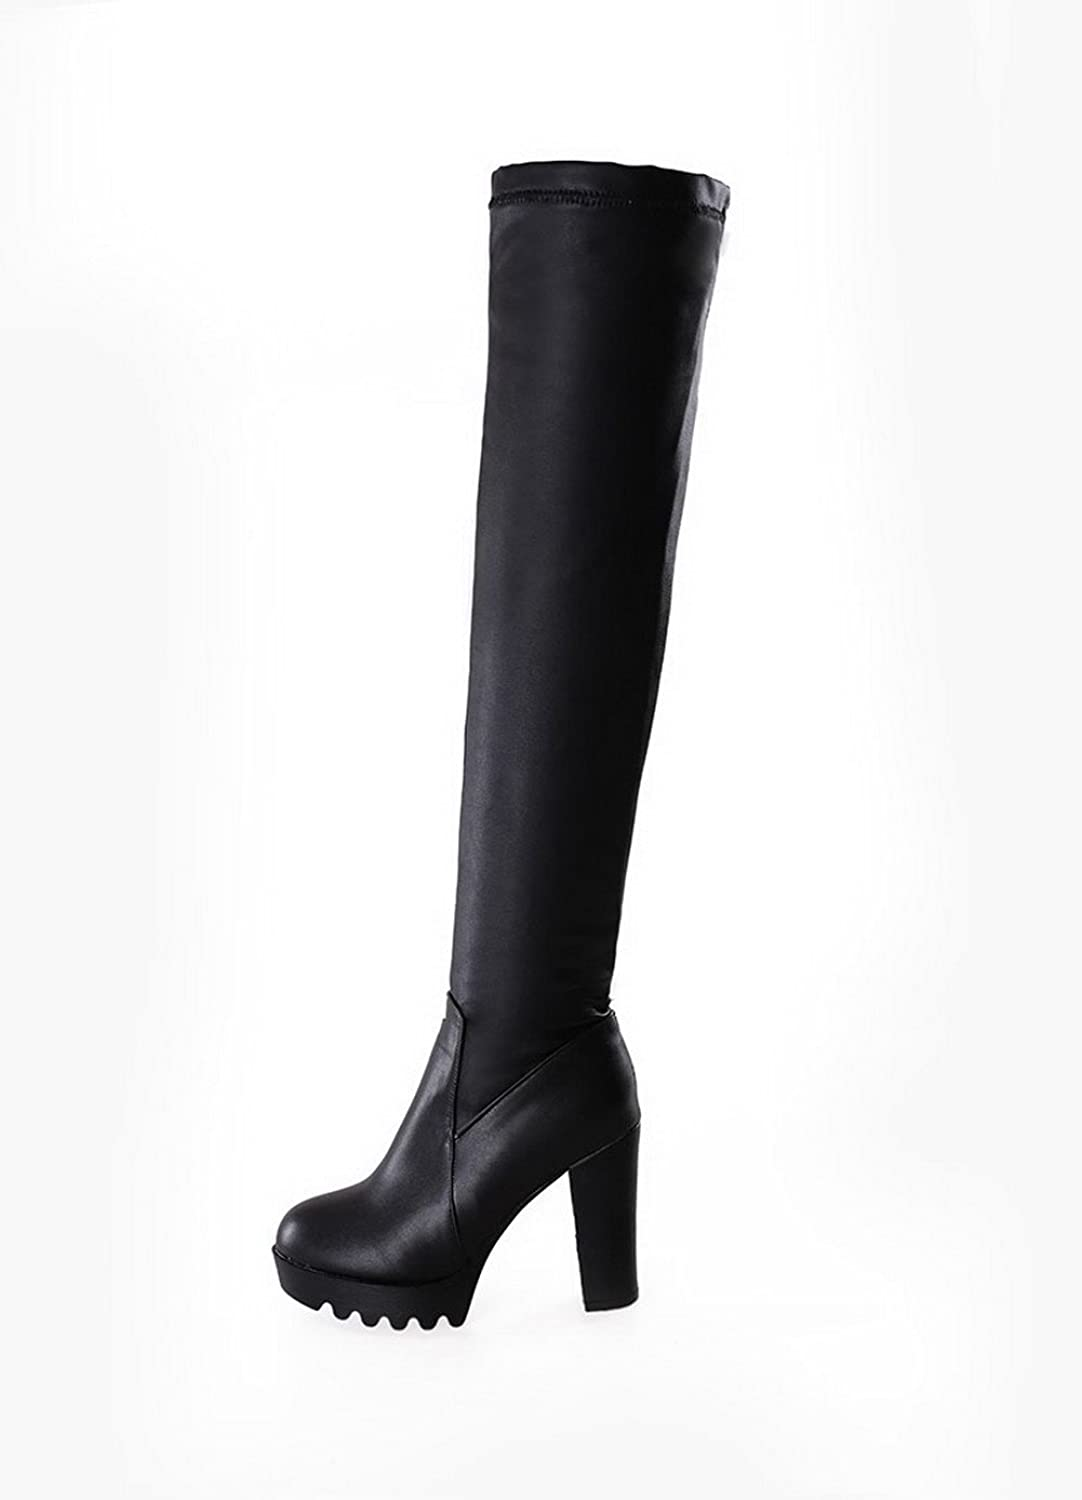 AmoonyFashion Women's Closed Round Toe PU Pull-On High-Heels Above-The-Knee Boots